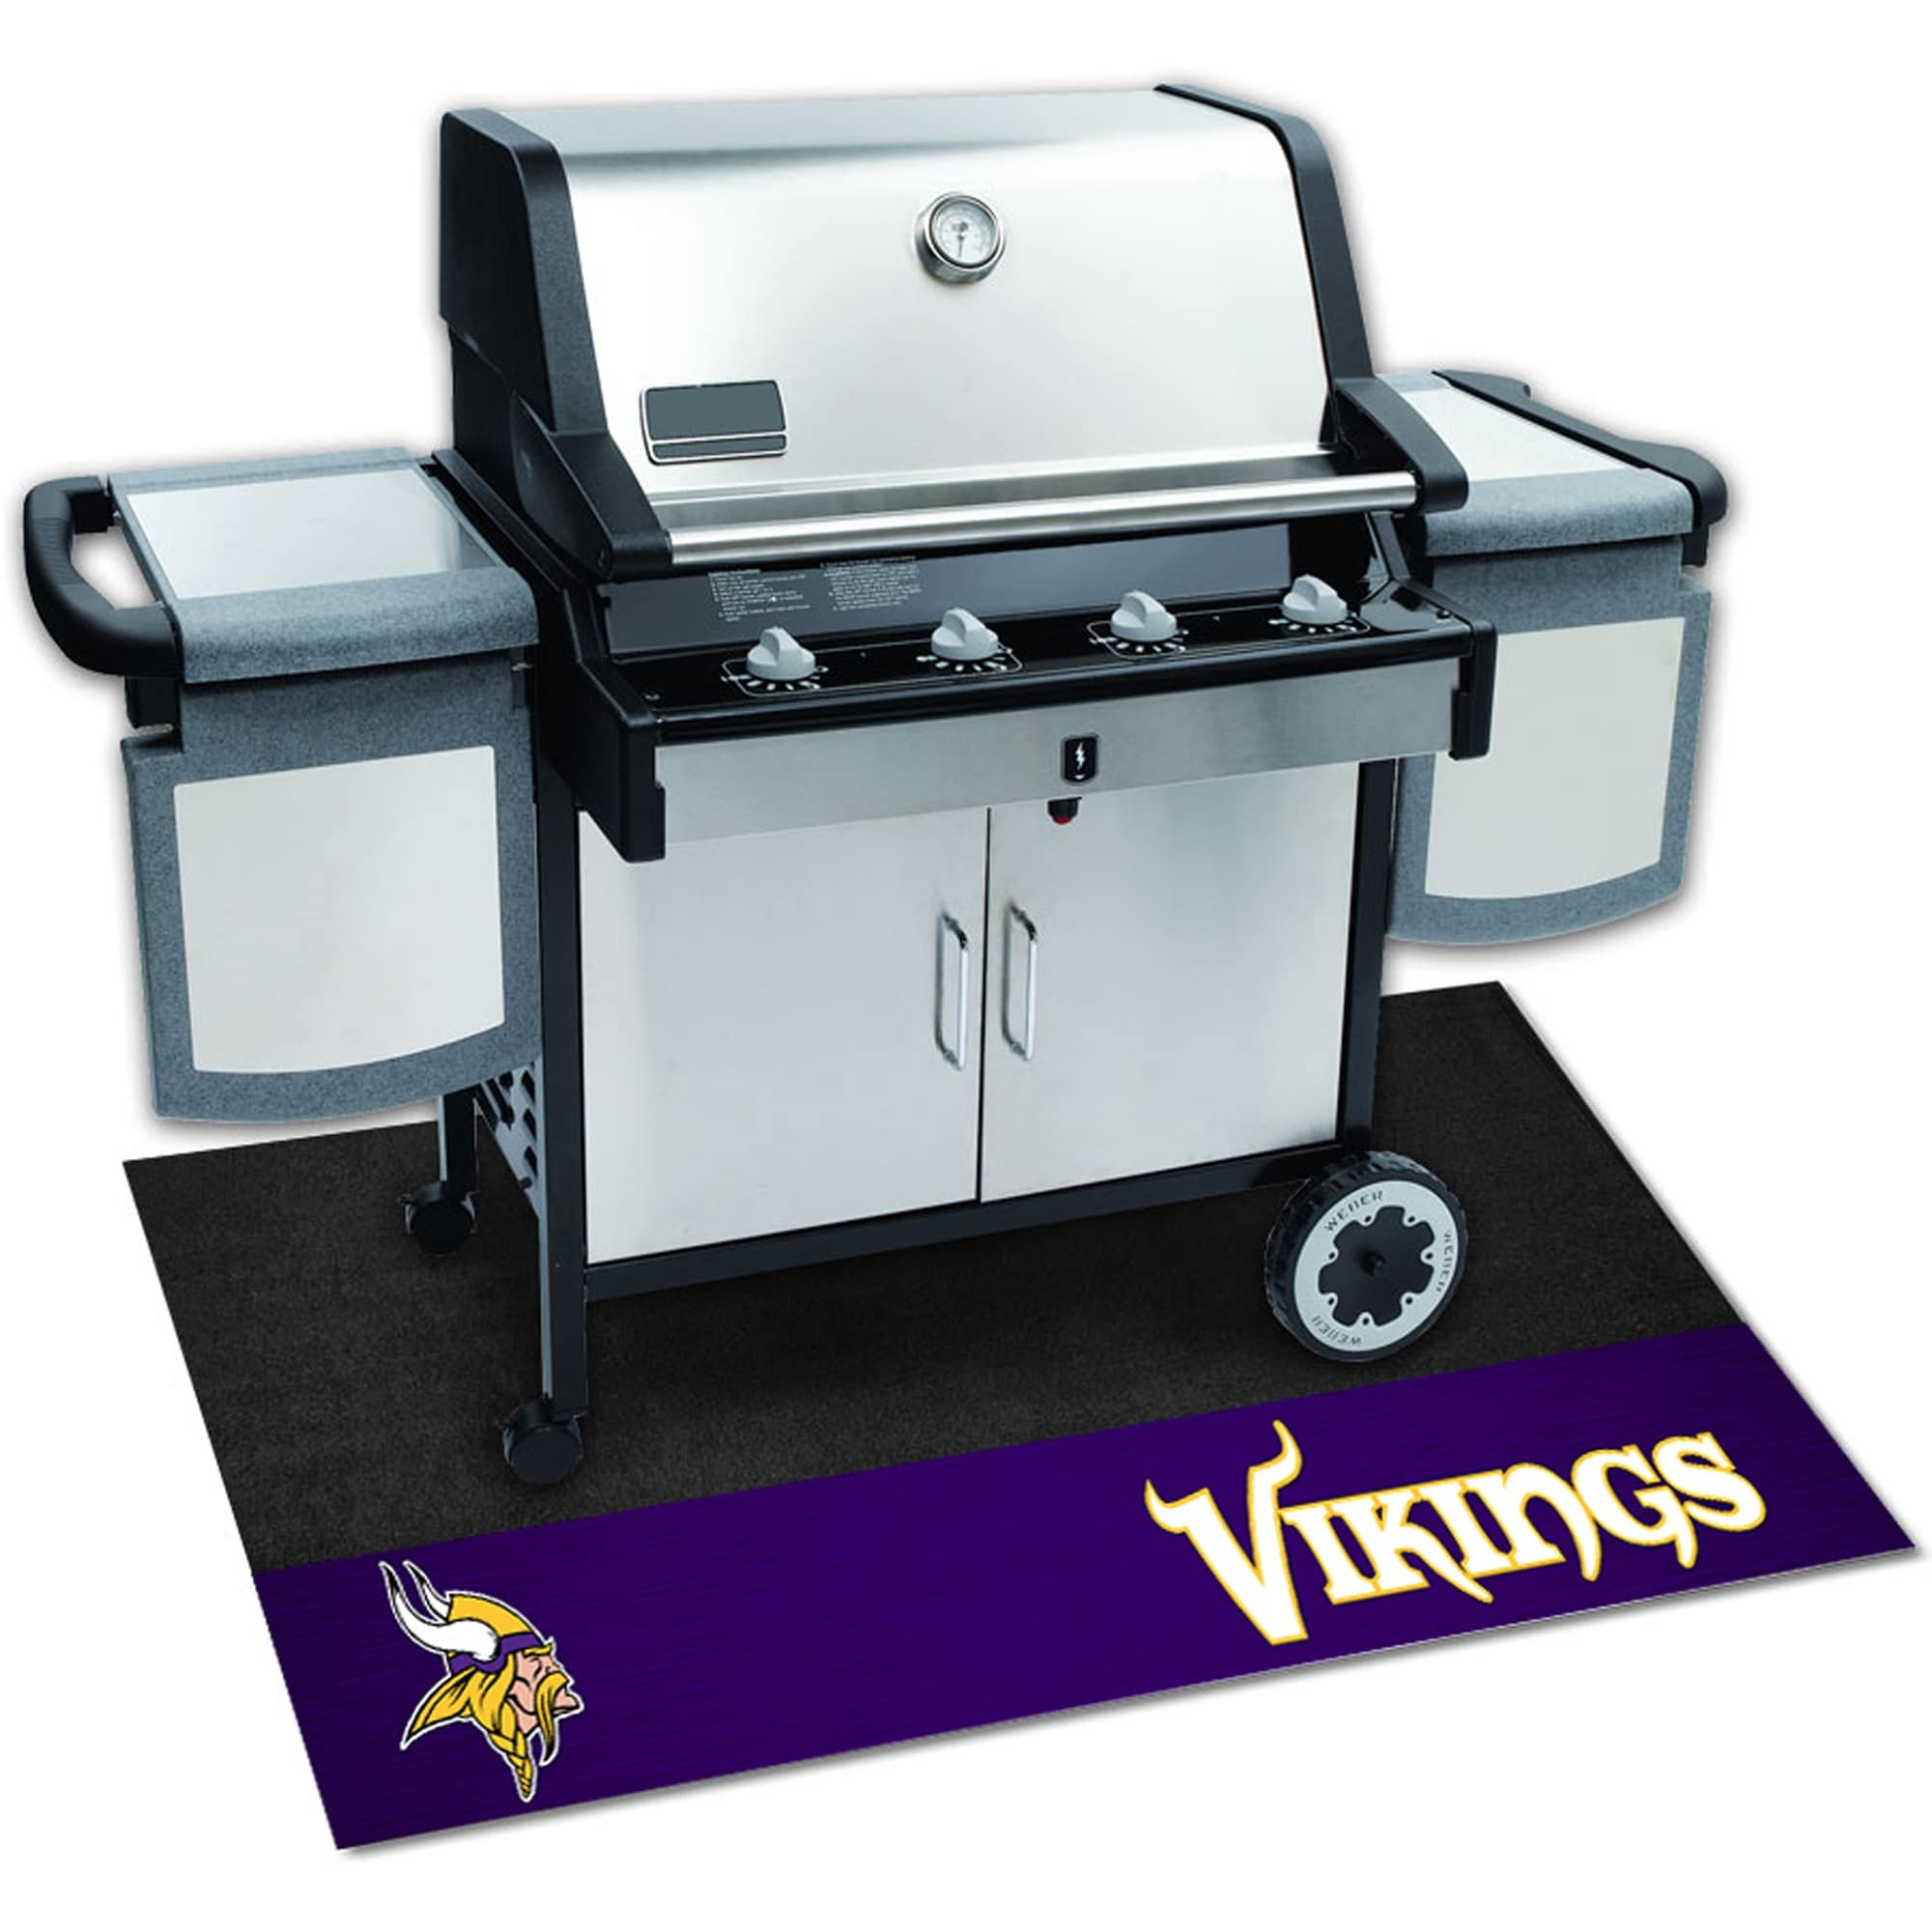 AM 42 X 26 Inch Vikings Grill Mat, Football Themed Outdoor Deck Patio Non Curling Area Rug Carpet Sports Patterned, Team Color Logo Fan Merchandise Athletic Spirit Purple Black Gold, Vinyl